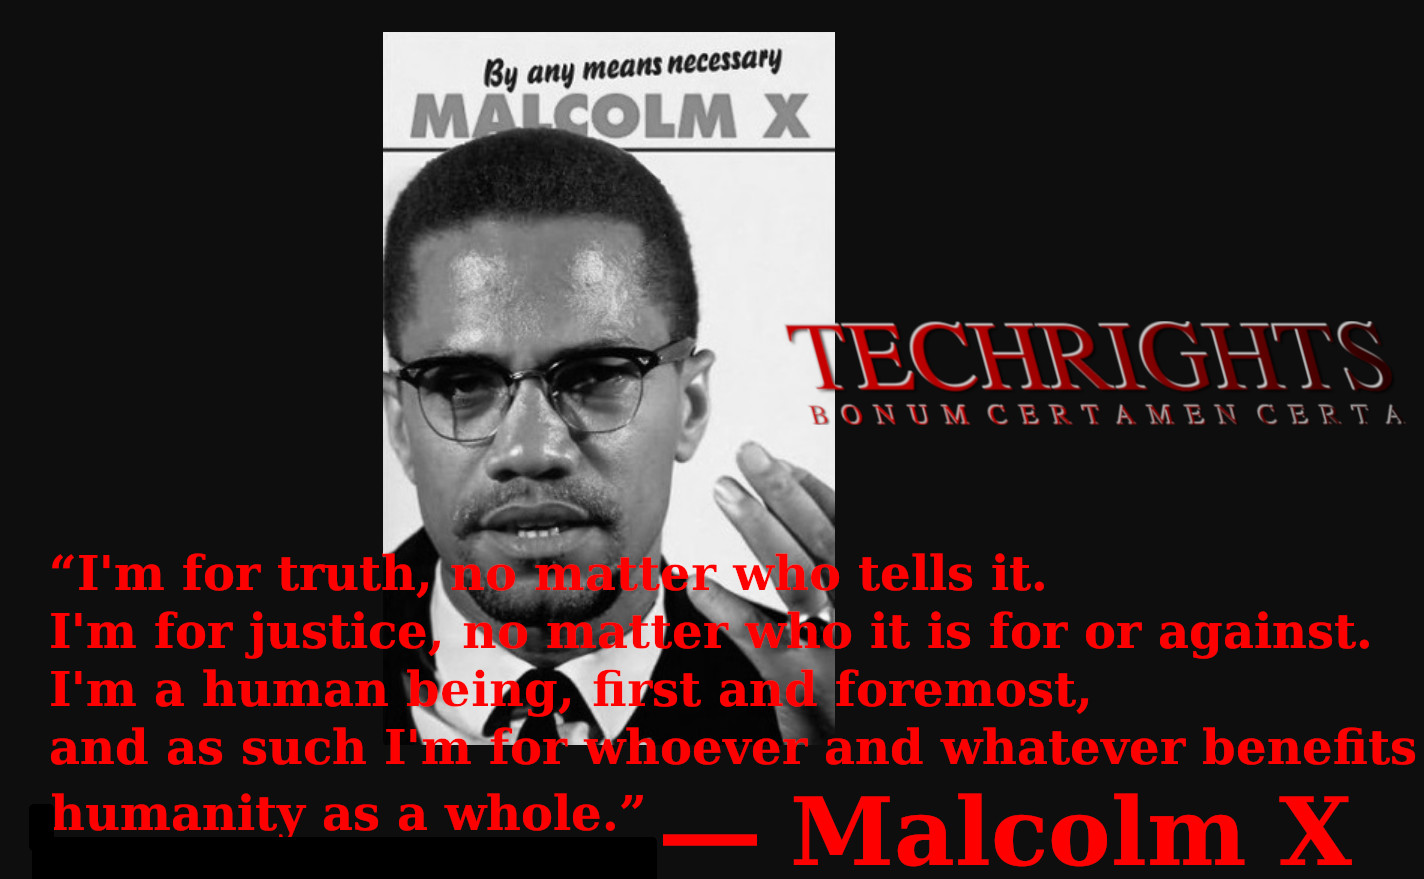 """I'm for truth, no matter who tells it. I'm for justice, no matter who it is for or against. I'm a human being, first and foremost, and as such I'm for whoever and whatever benefits humanity as a whole.""  ― Malcolm X"